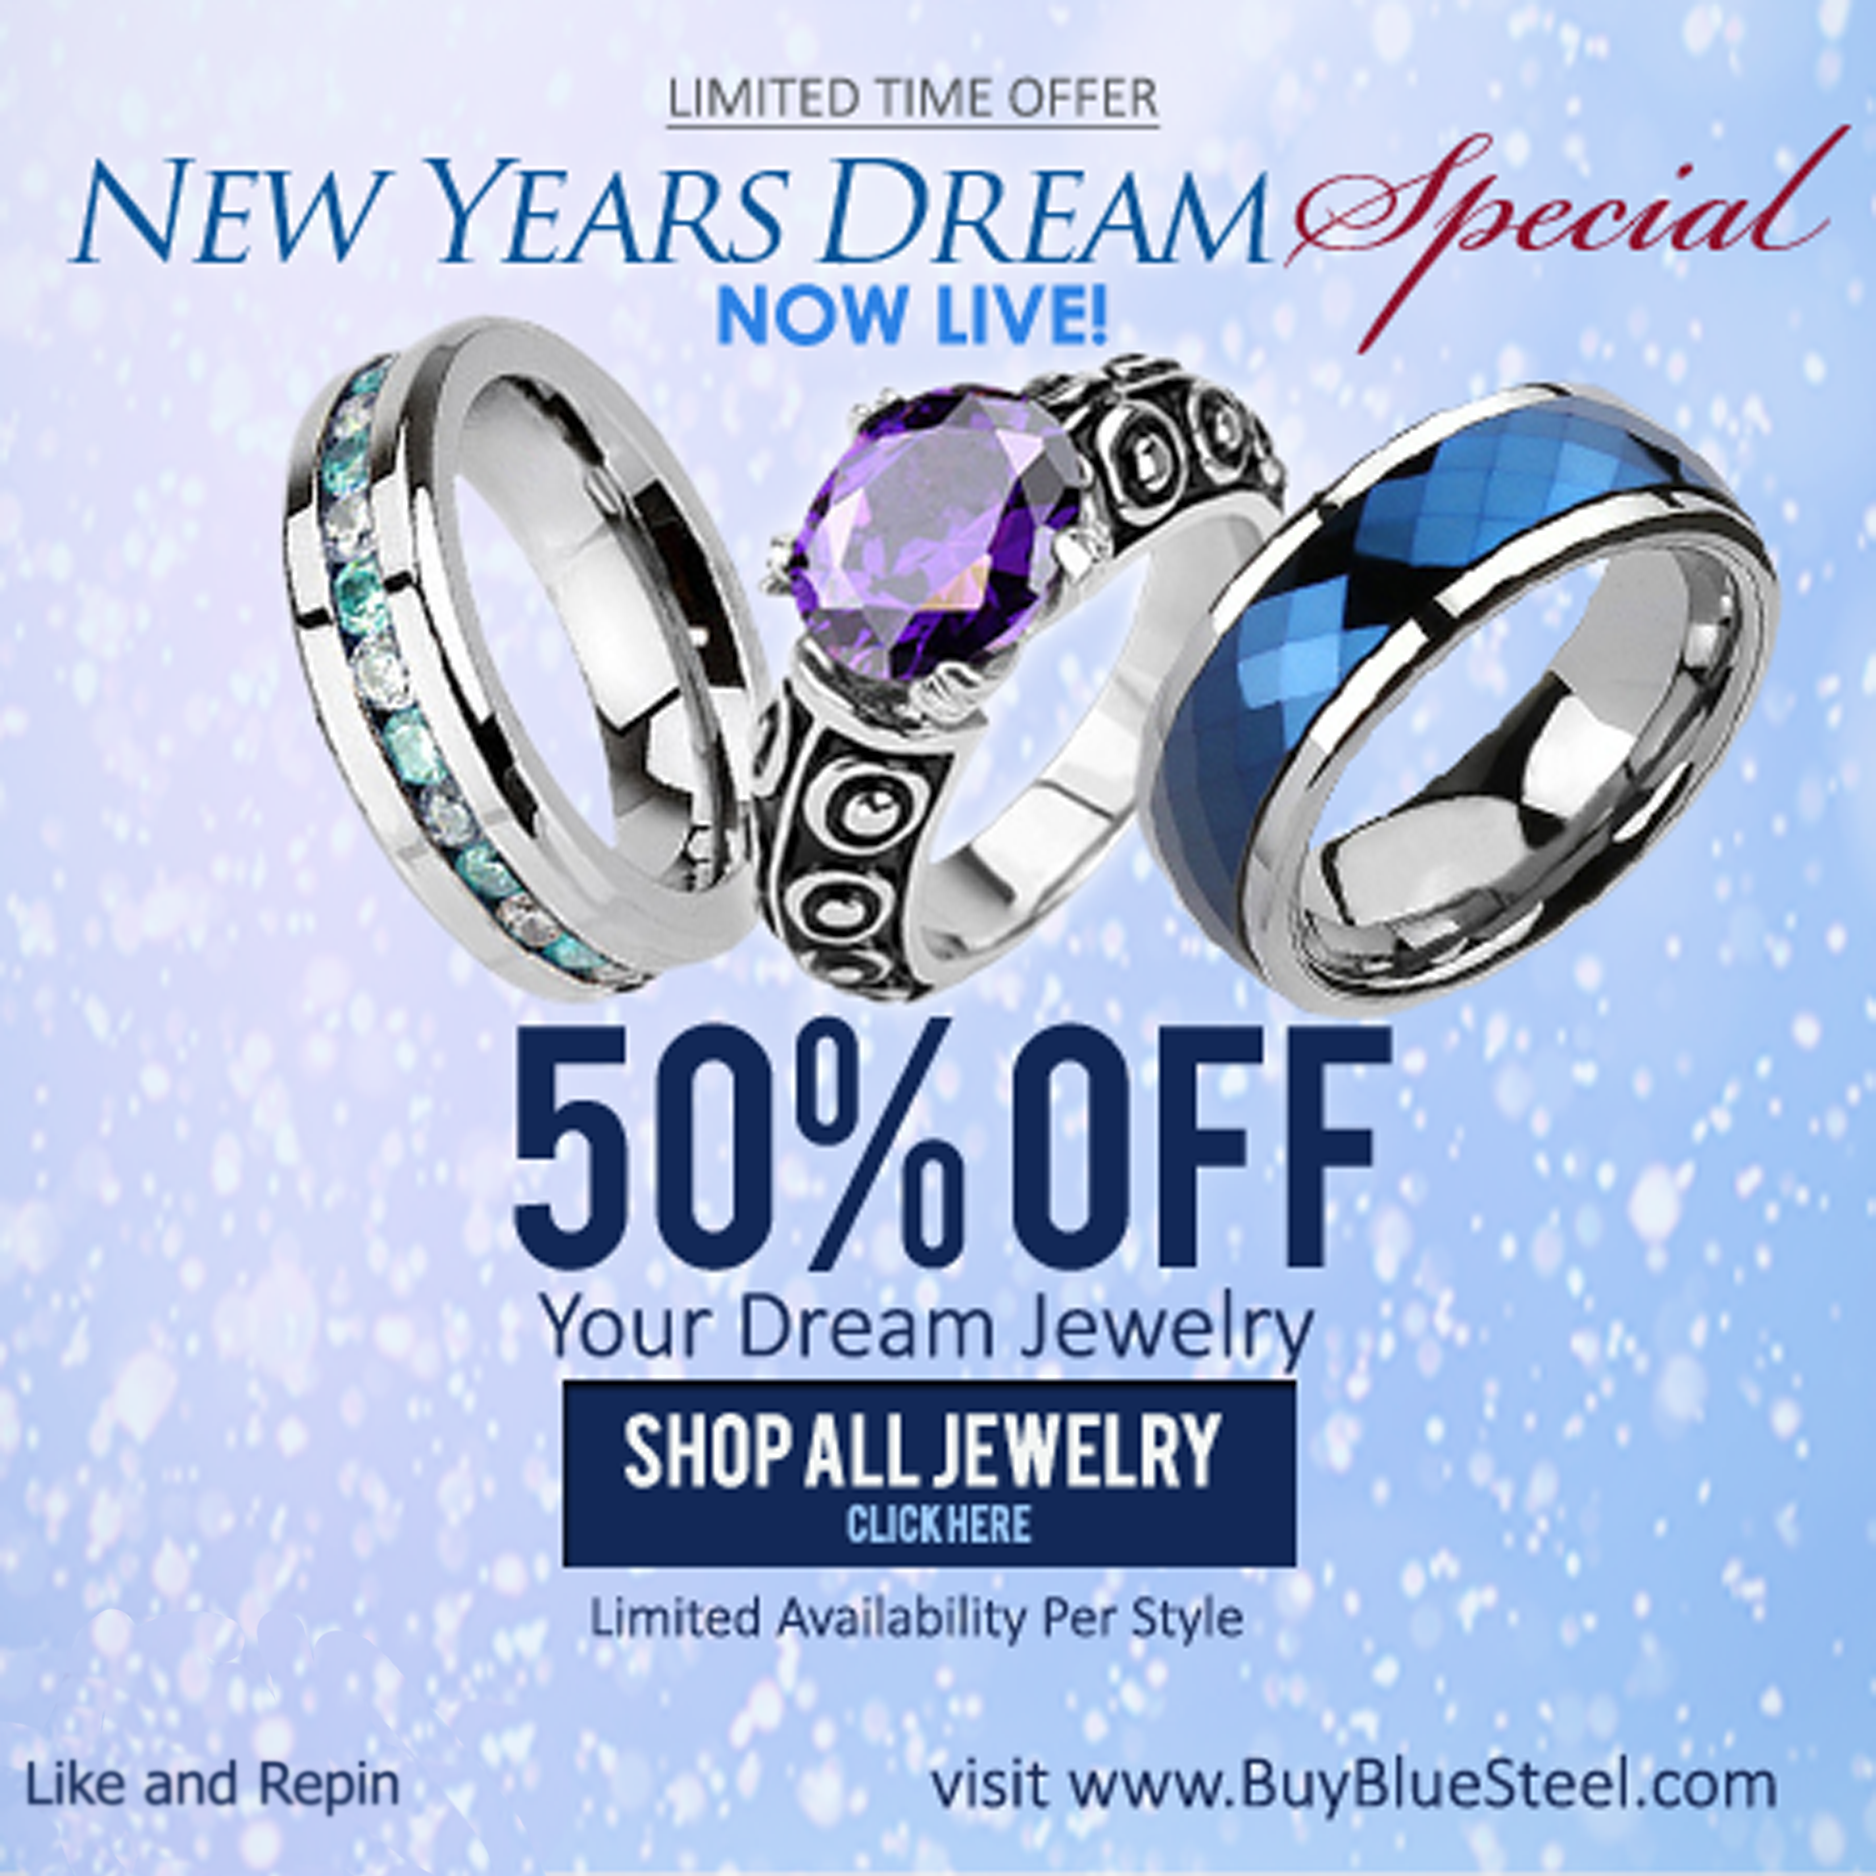 What's Your New Year's Dream? #BuyBlueSteel